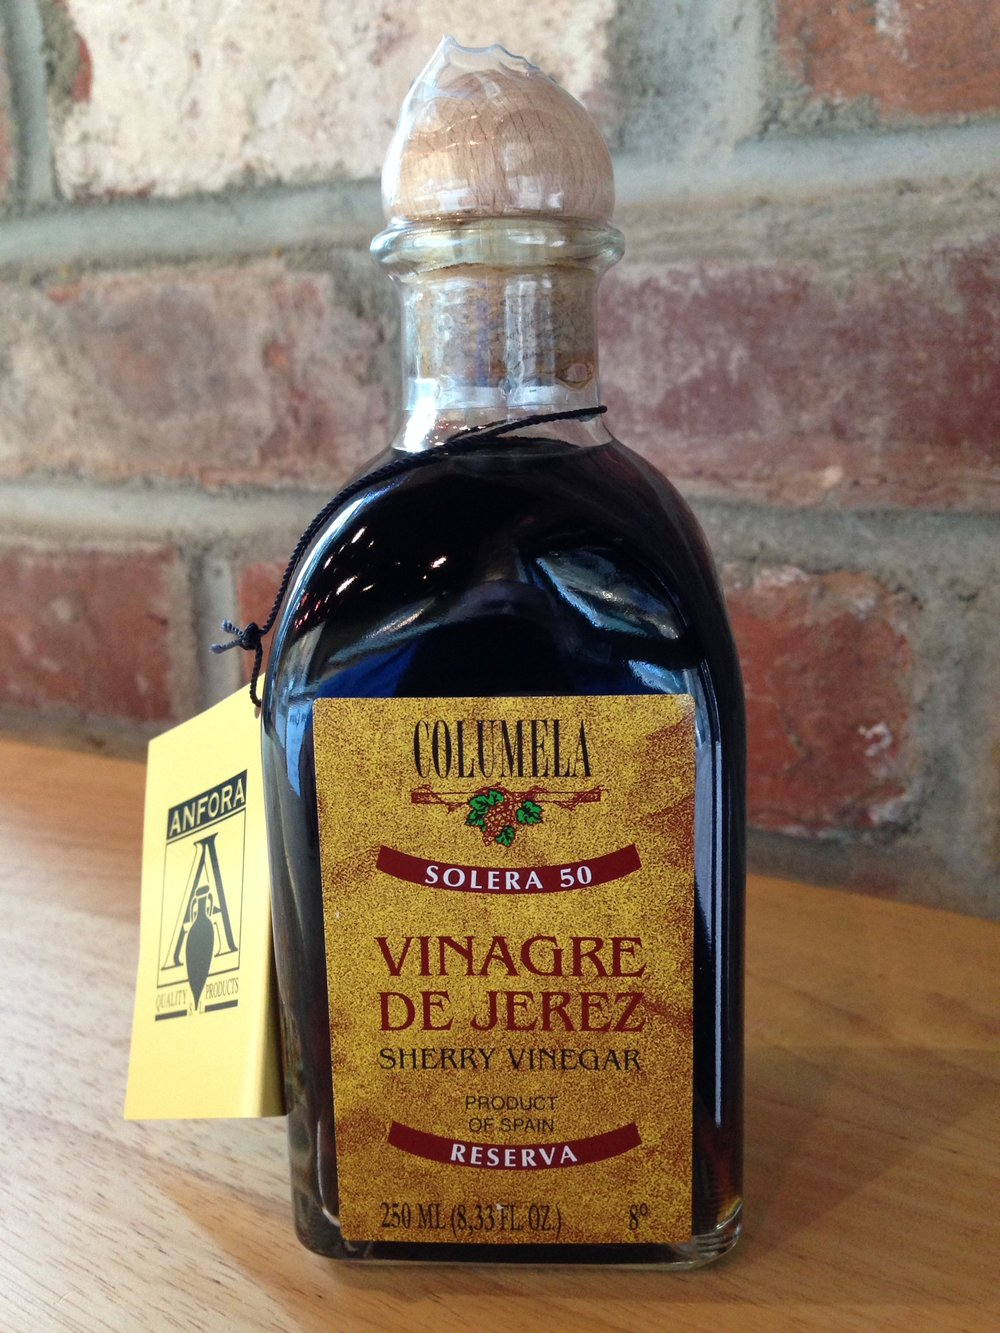 Just in is our 50 year Spanish Sherry Vinegar, made with the same grapes as the expensive Spanish Sherry.